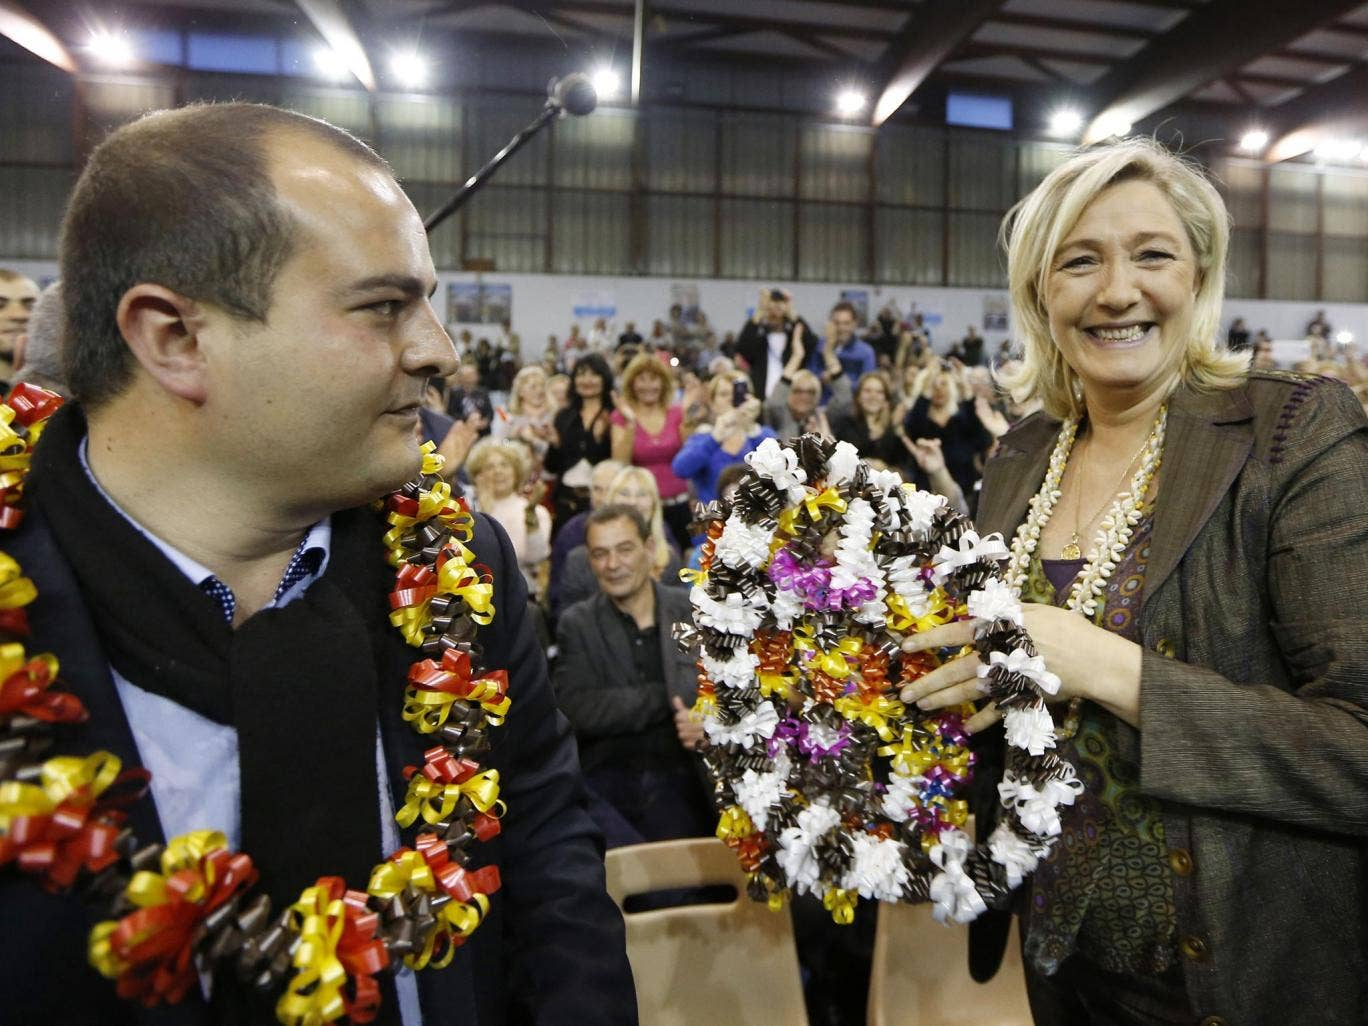 The National Front president Marine Le Pen and David Rachline, the party's candidate for tomorrow's mayoral elections in Fréjus, at a campaign meeting earlier this month